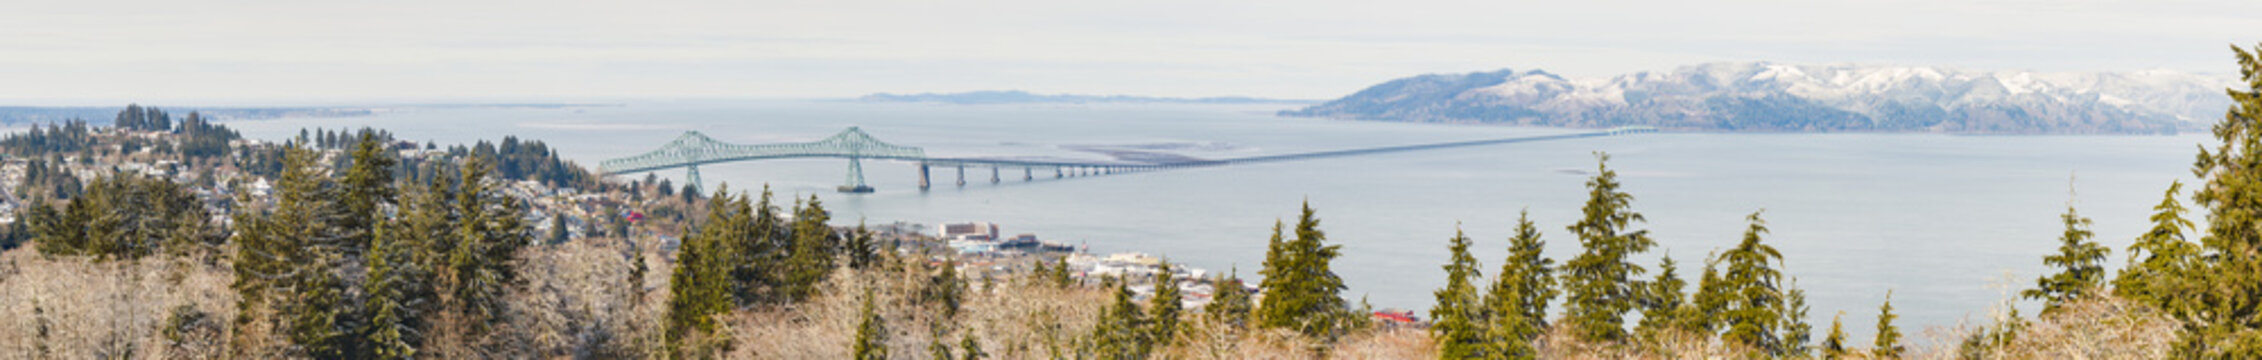 Astoria, Oregon and the Columbia River Bar